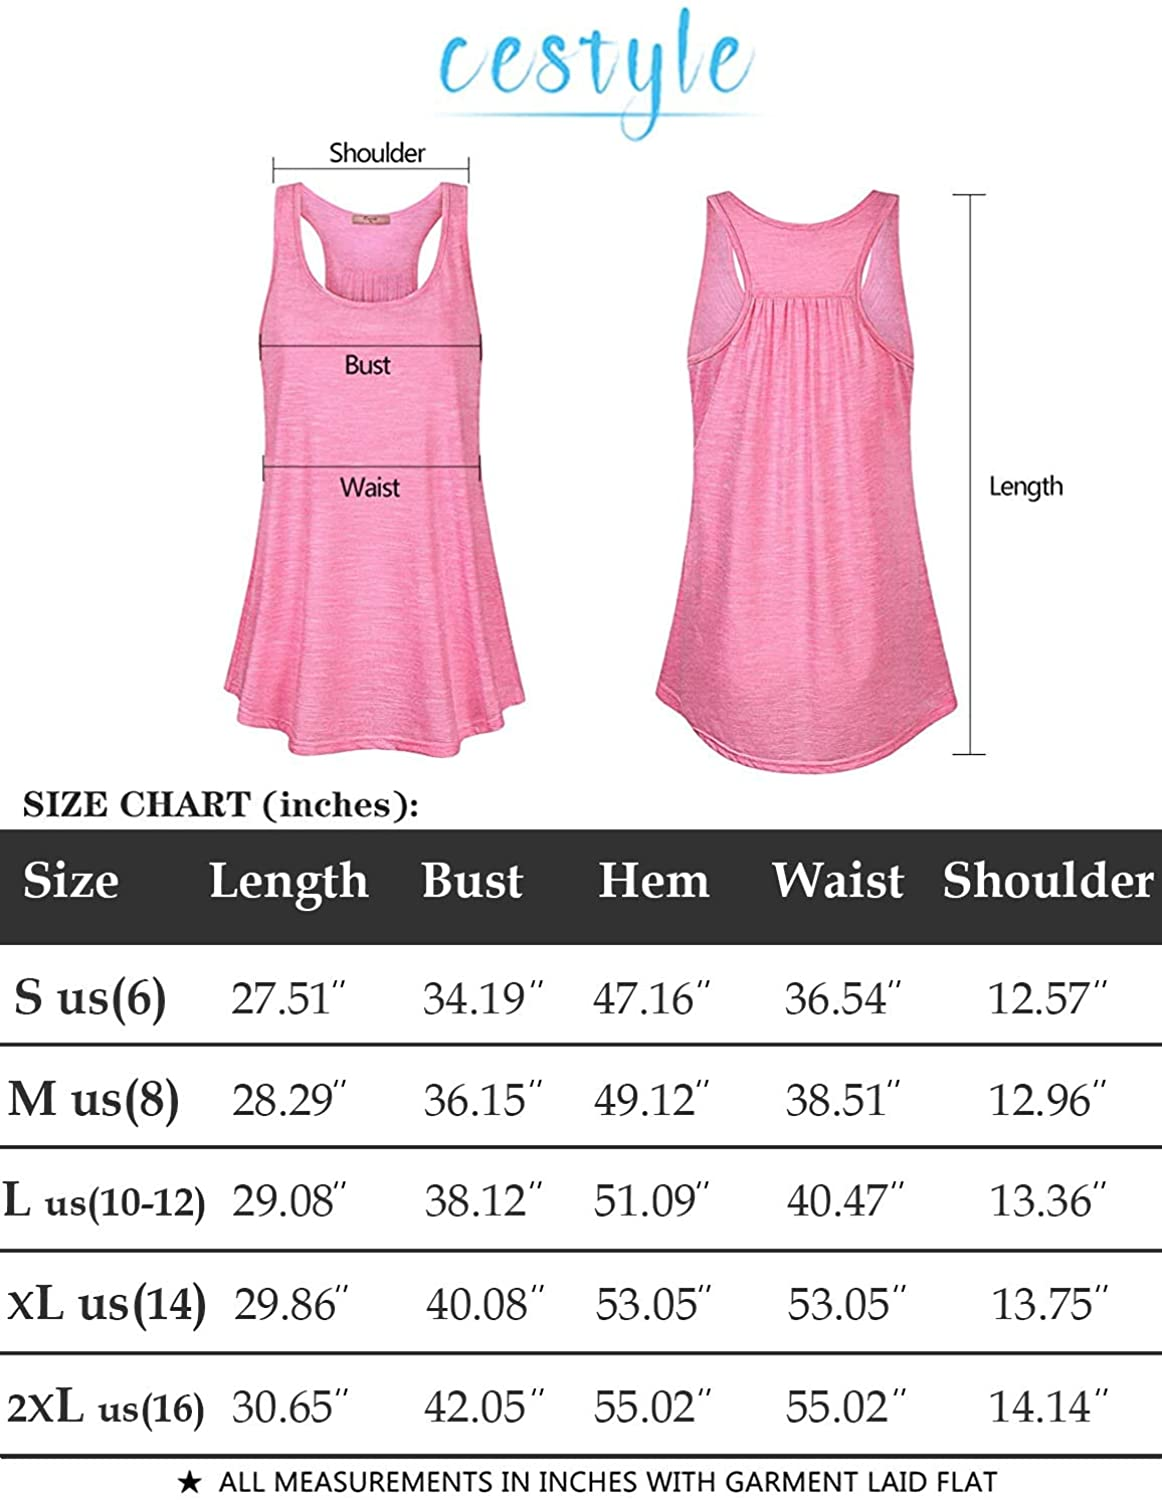 Cestyle Womens Sleeveless Scoop Neck Flowy Workout Racerback Tank Tops: Clothing